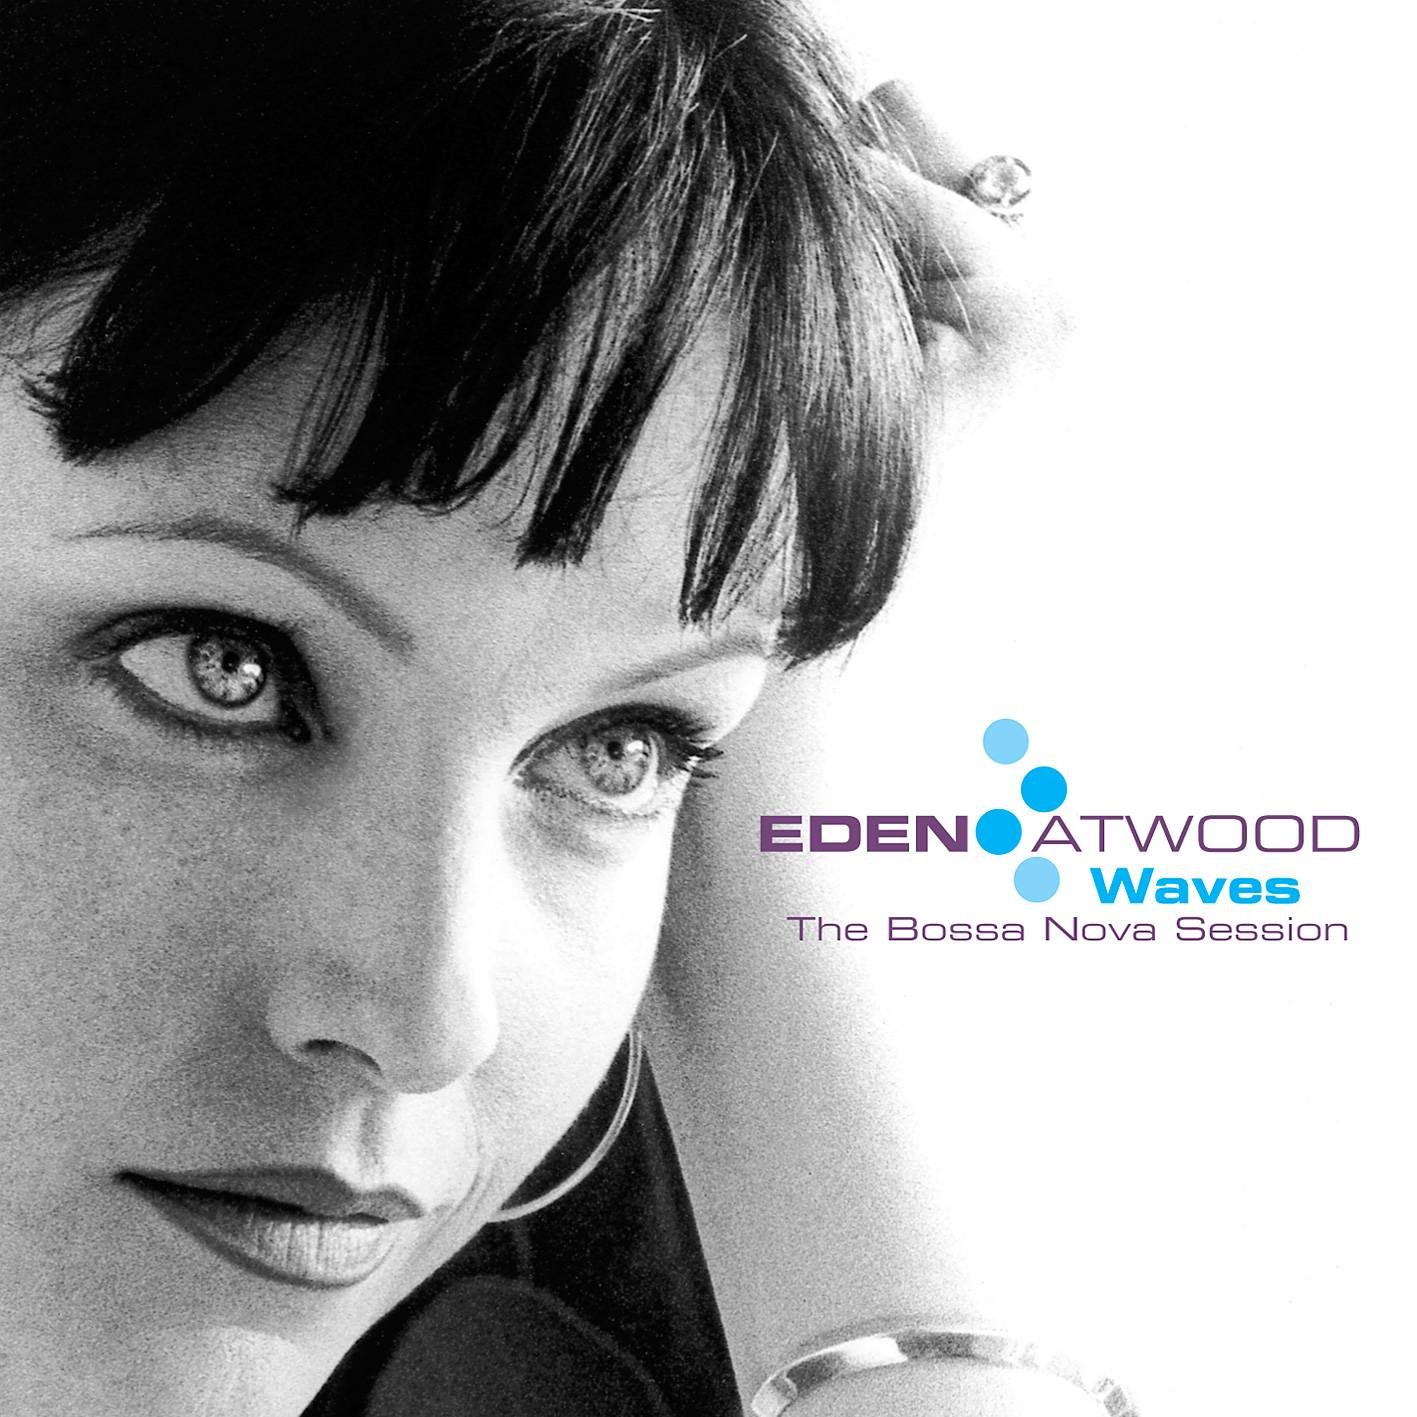 Eden Atwood - Waves: The Bossa Nova Session (2002) [DSD64 + Hi-Res FLAC]